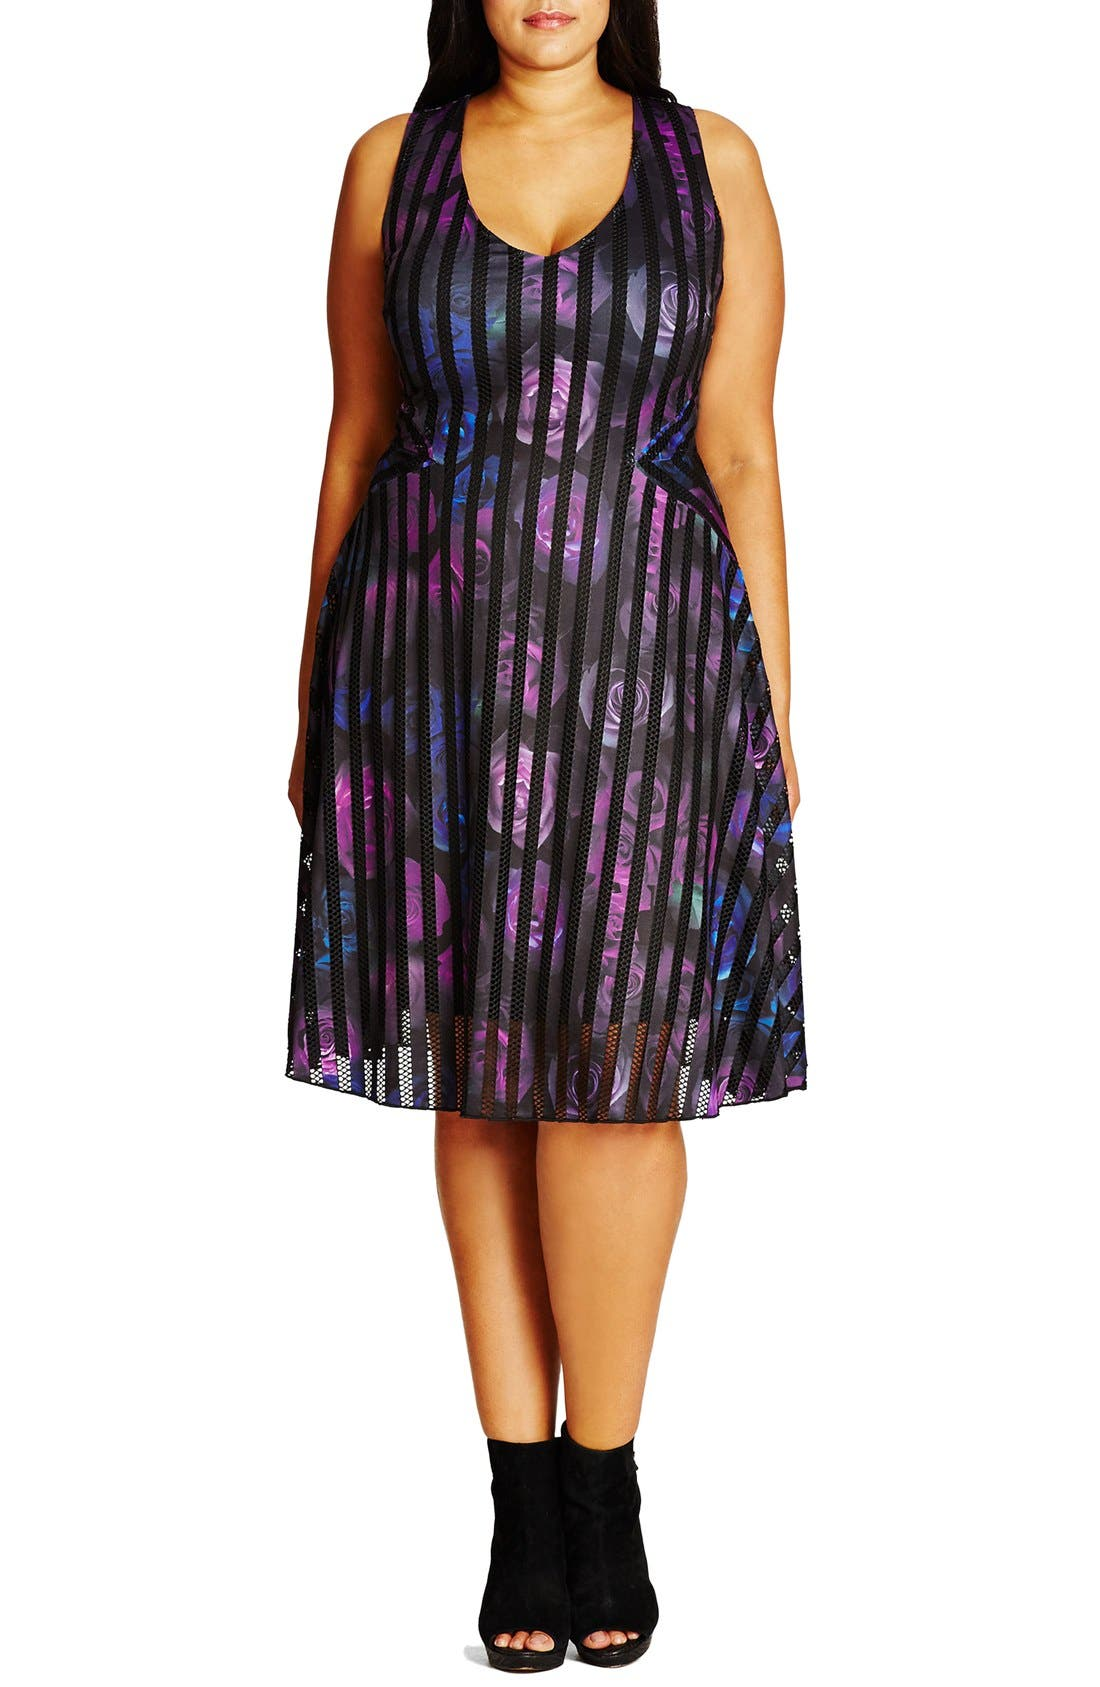 Alternate Image 1 Selected - City Chic Rose Garden Fit & Flare Dress (Plus Size)